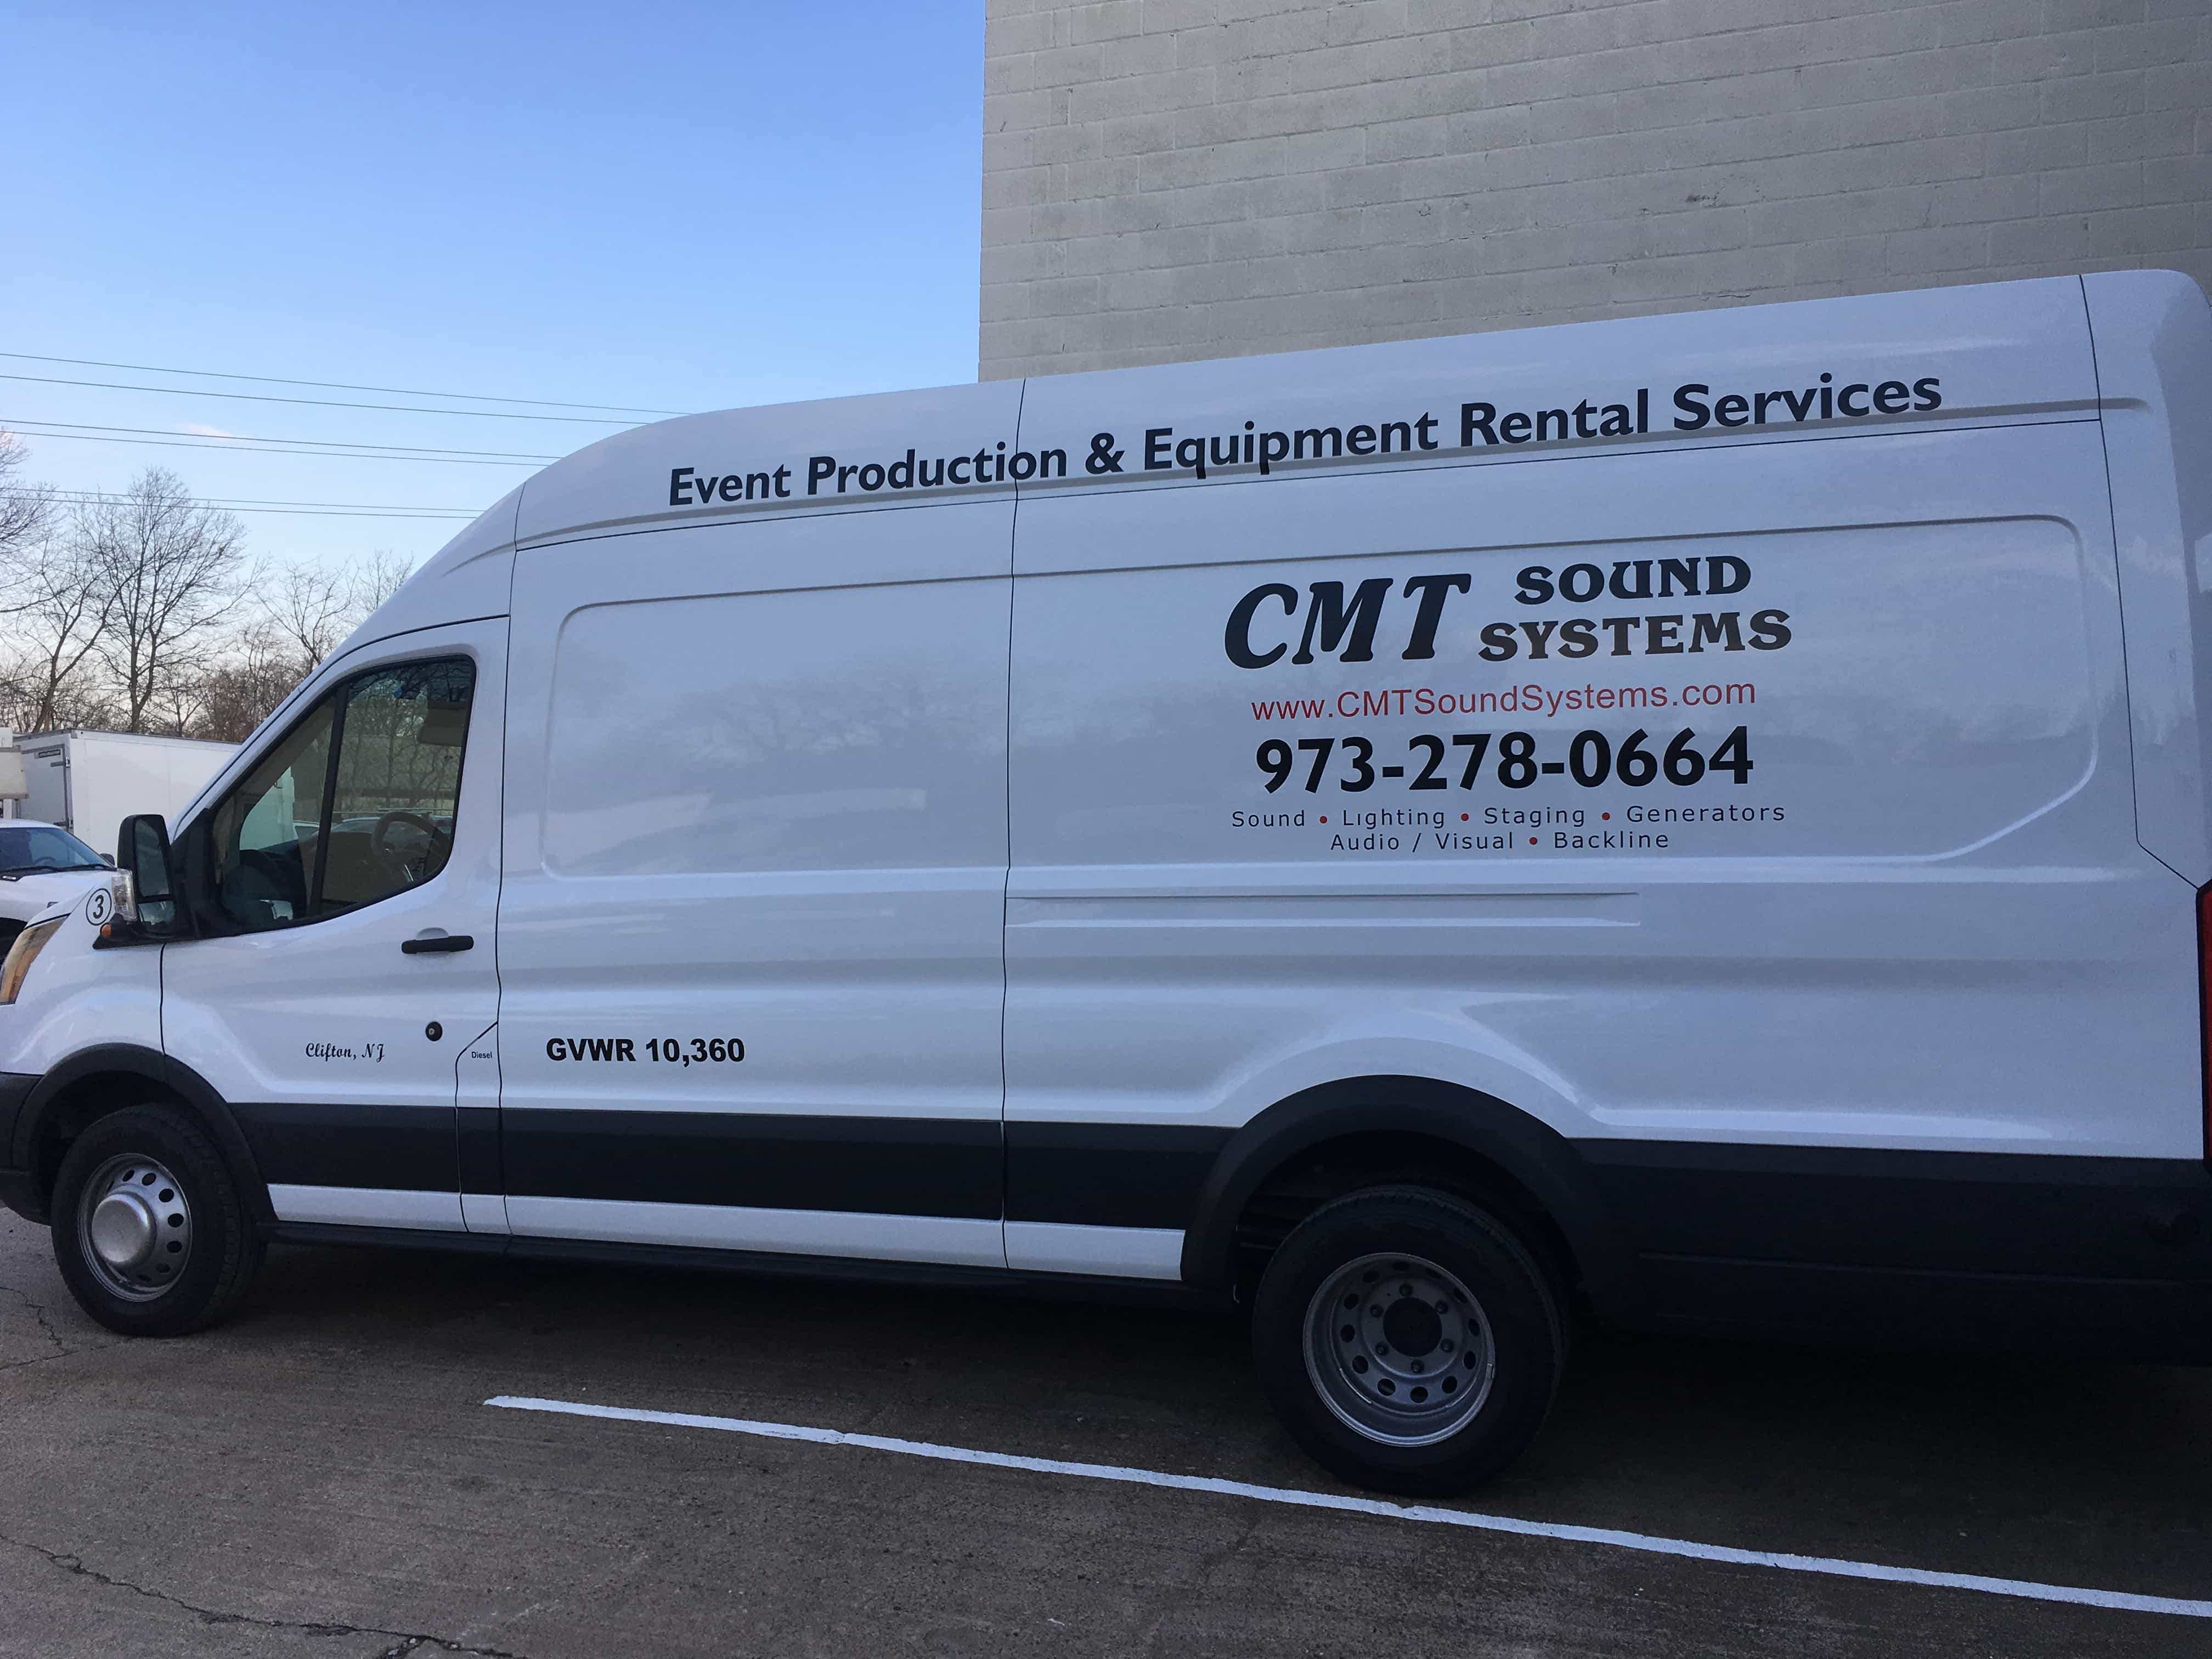 Truck fleet expands for 2017 - CMT Sound Systems